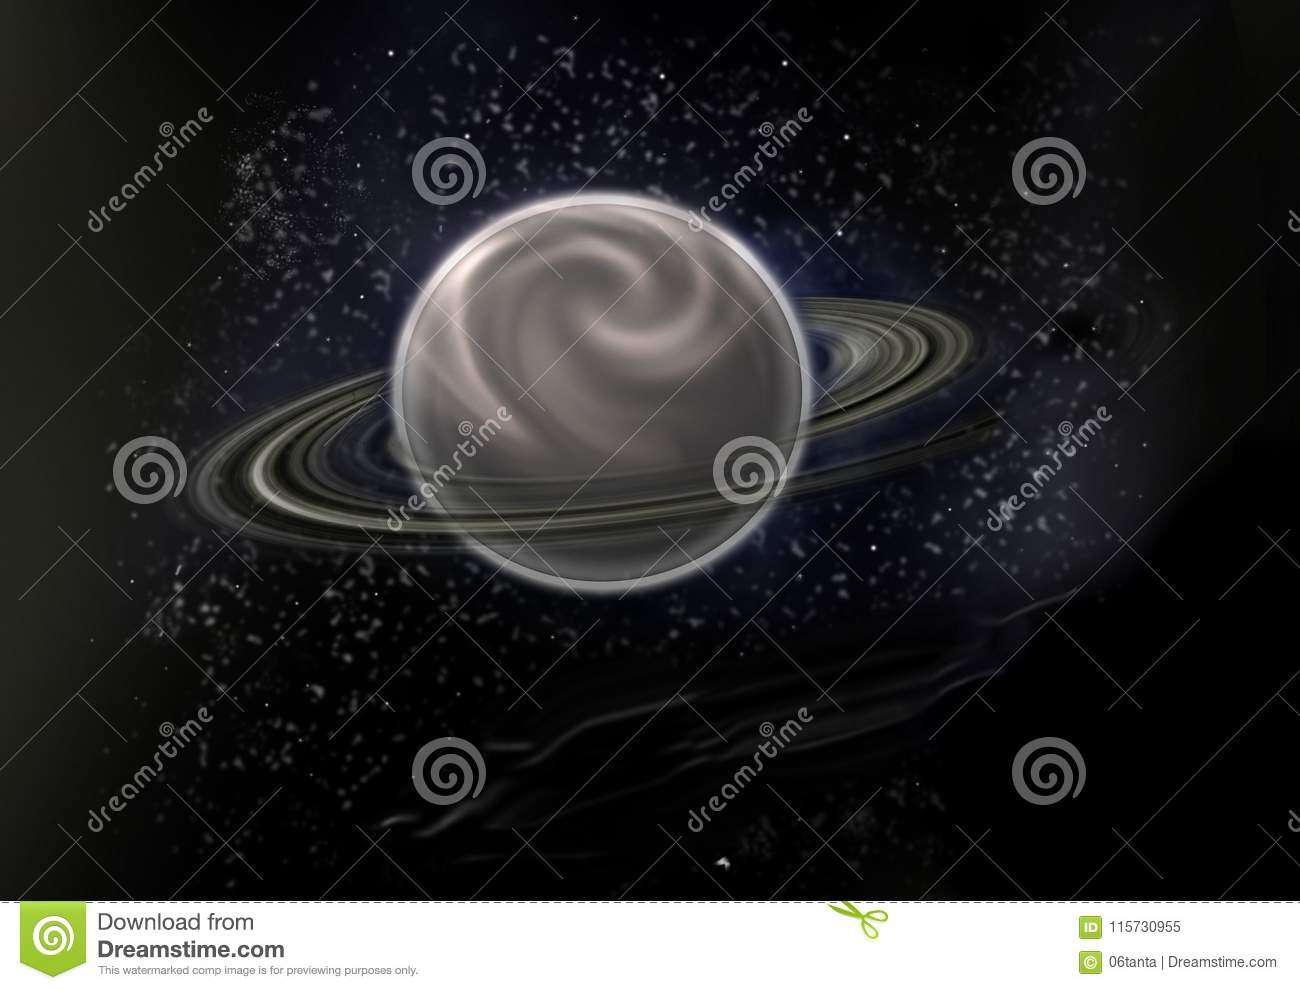 Black star background with a major planet in the centre